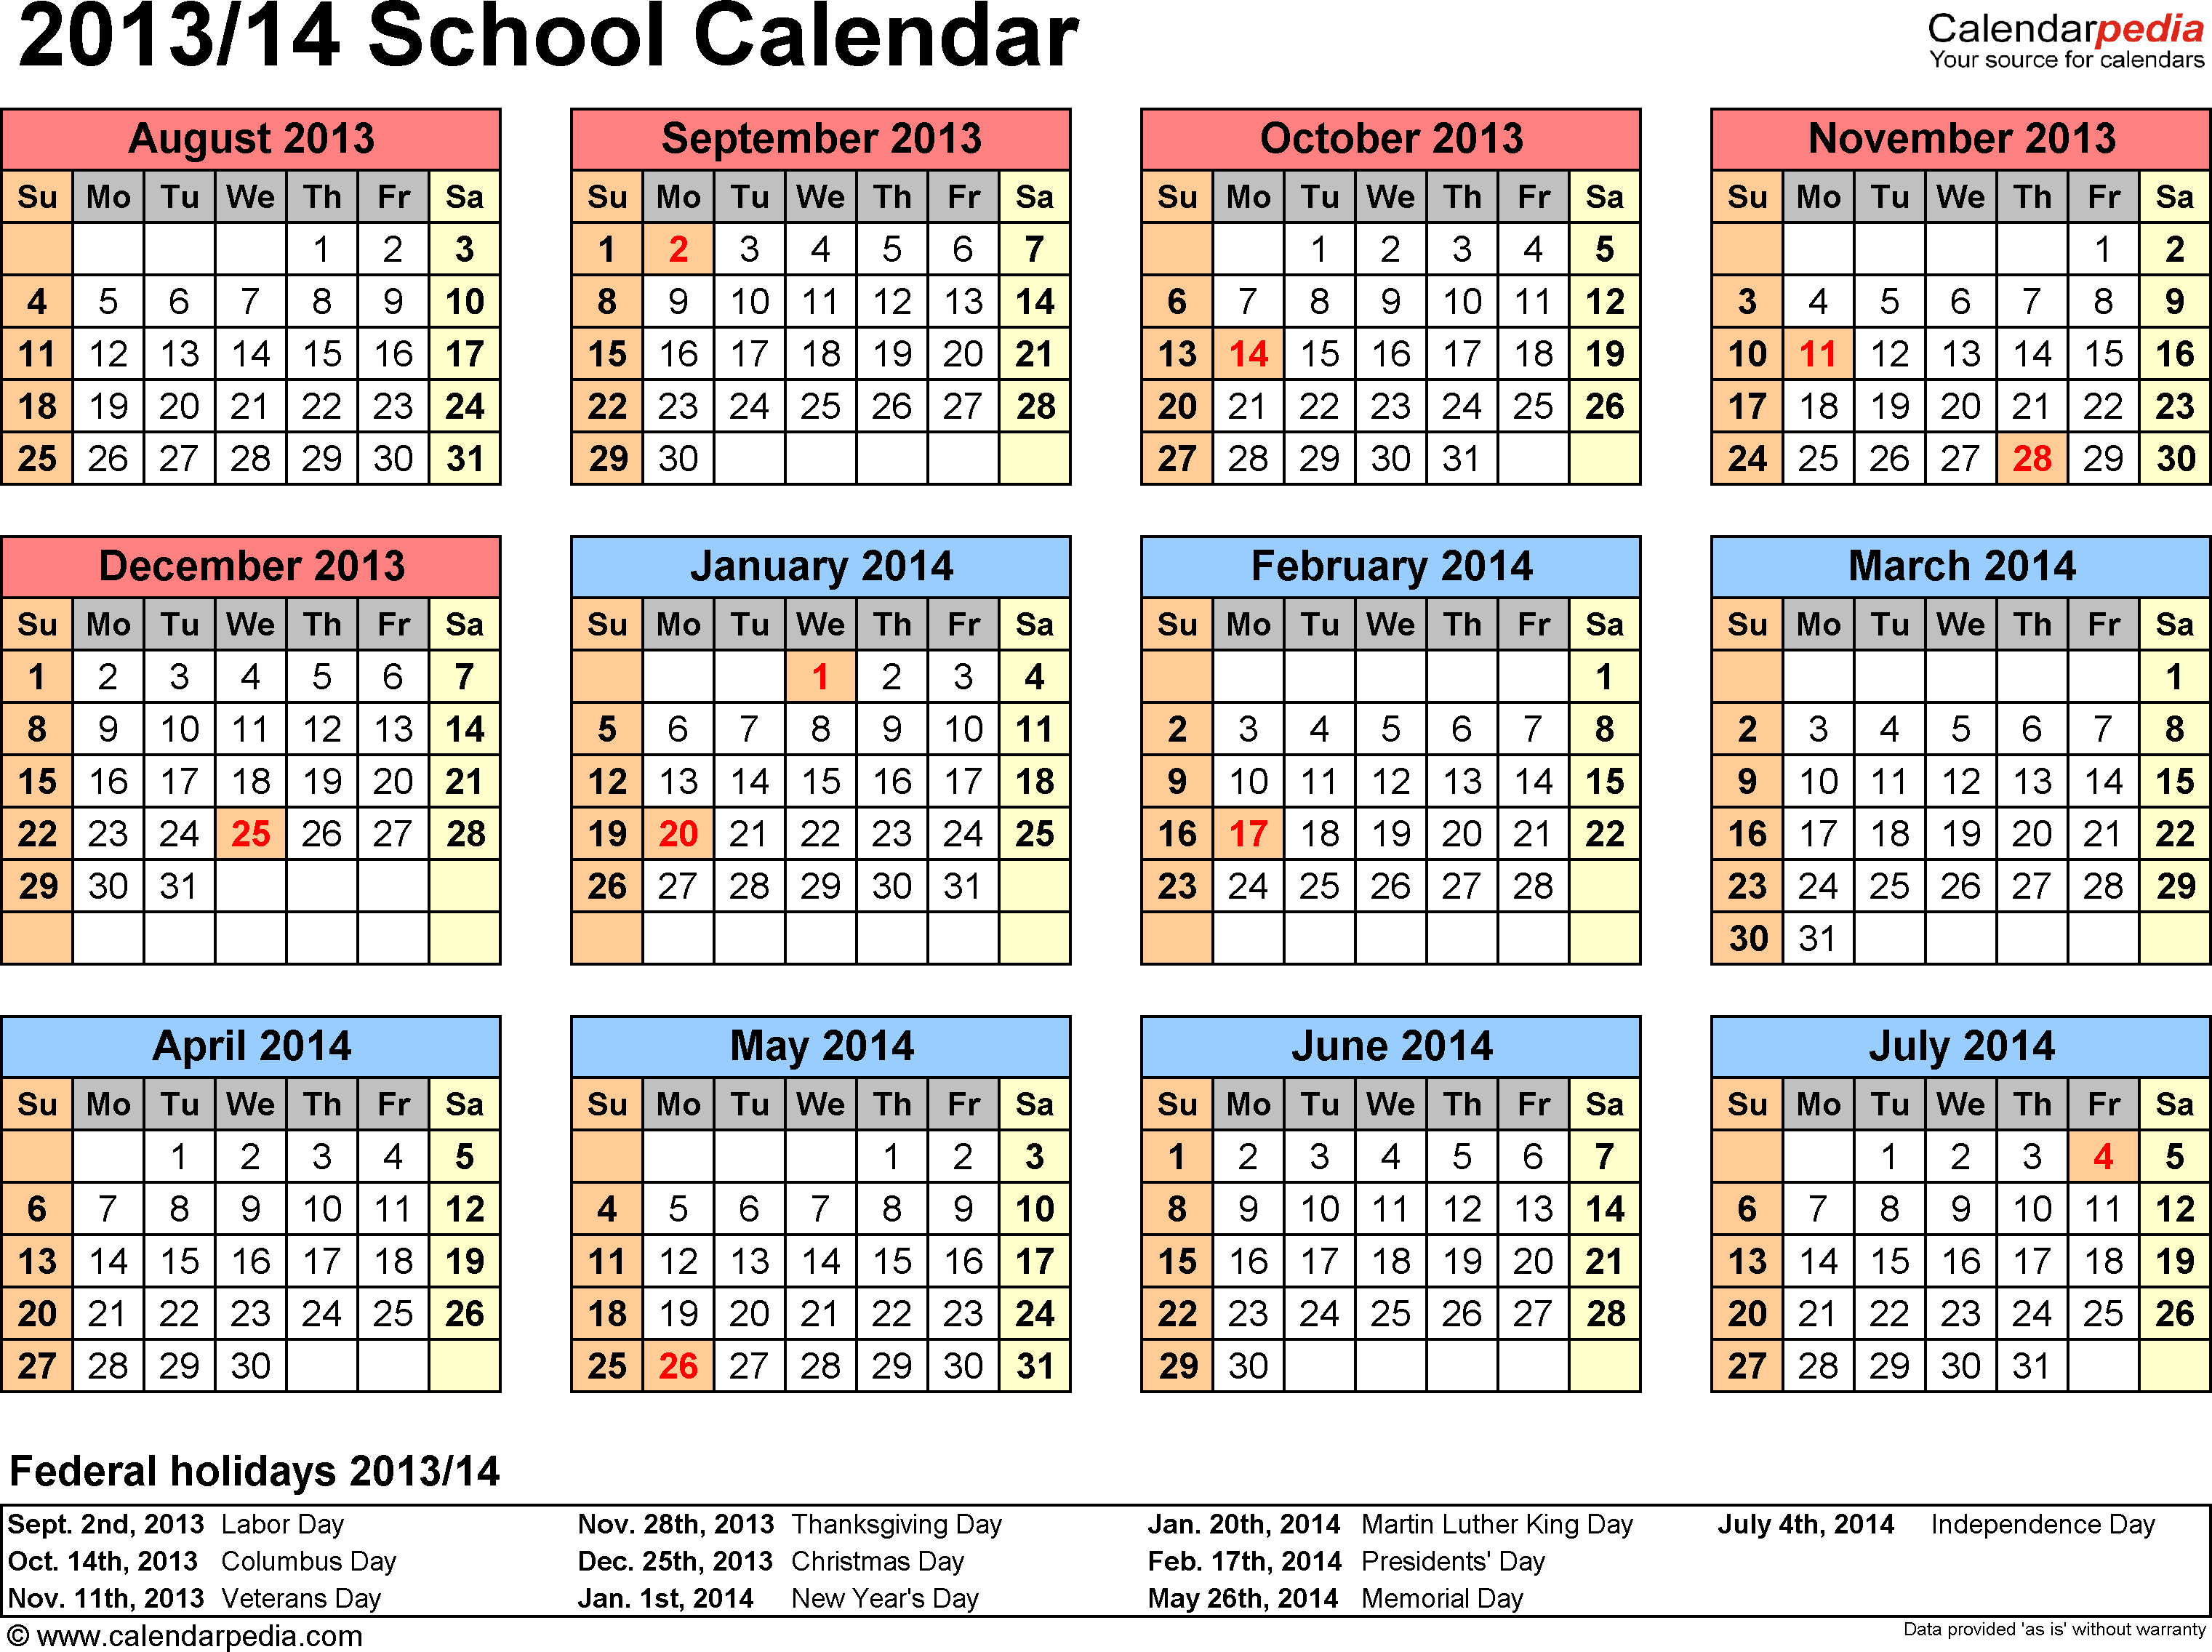 Template 4: School calendar 2013/14 for Word, landscape orientation, year at a glance, 1 page